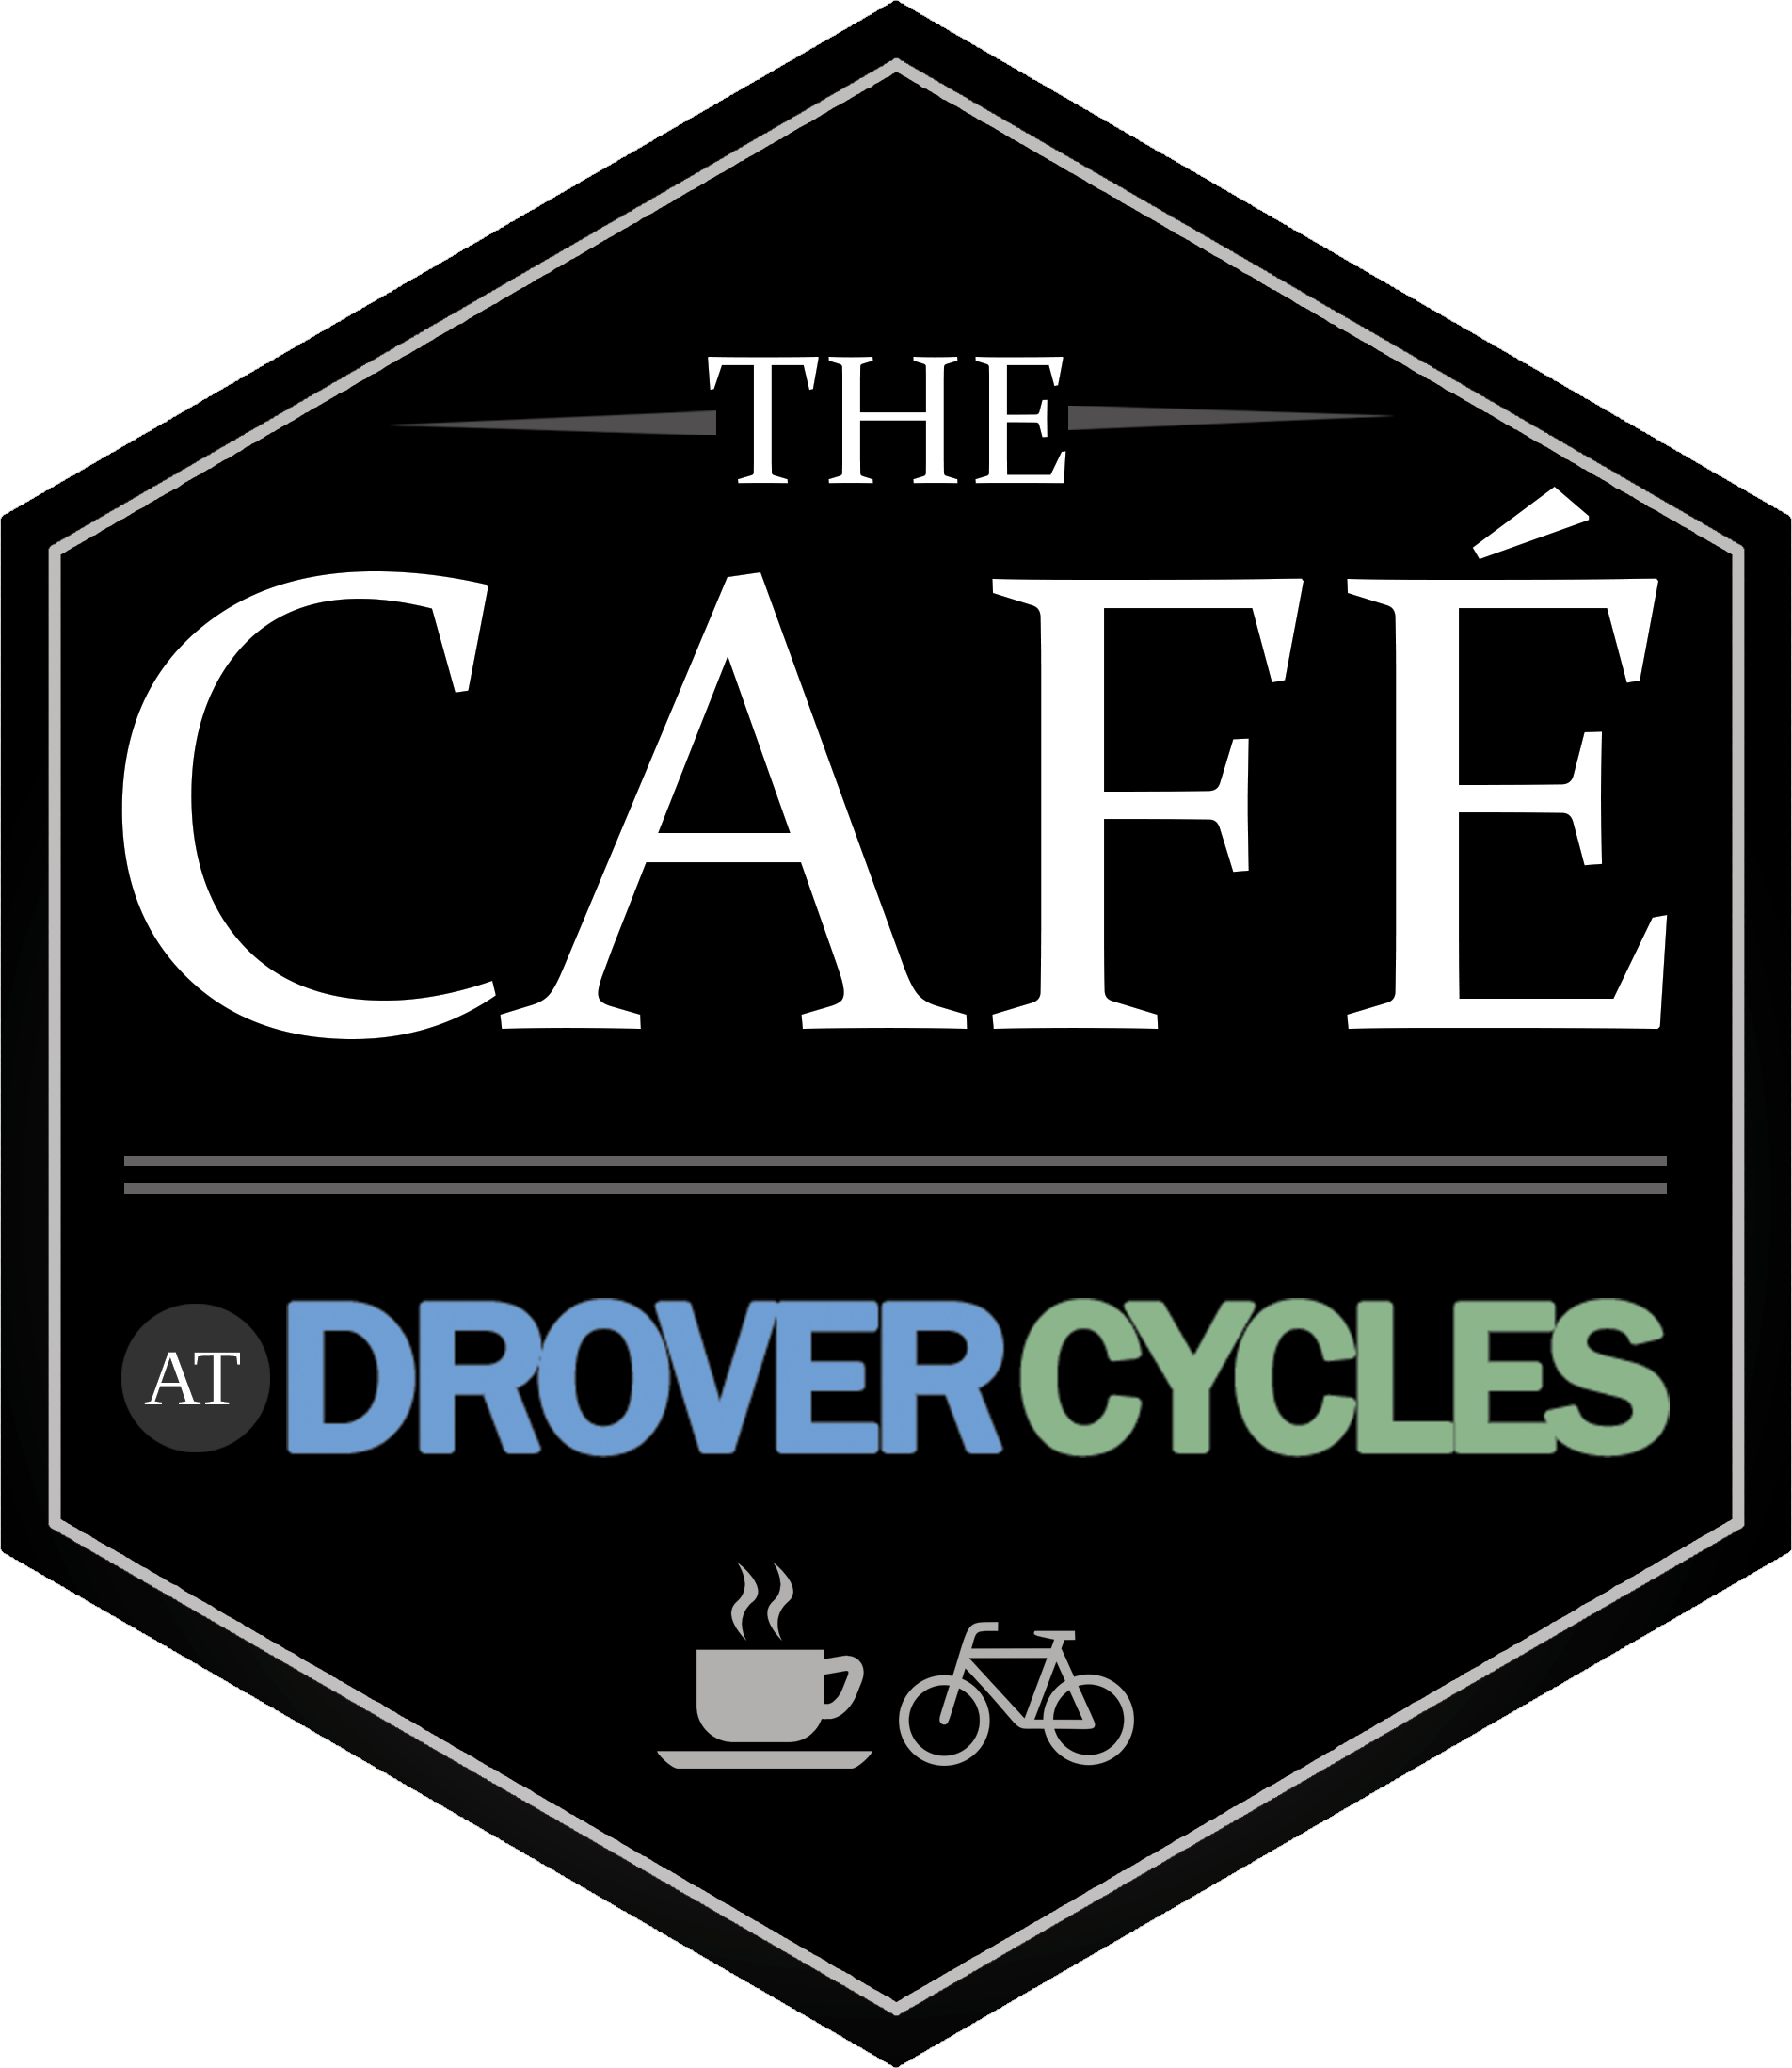 Drover Cycles Cafe